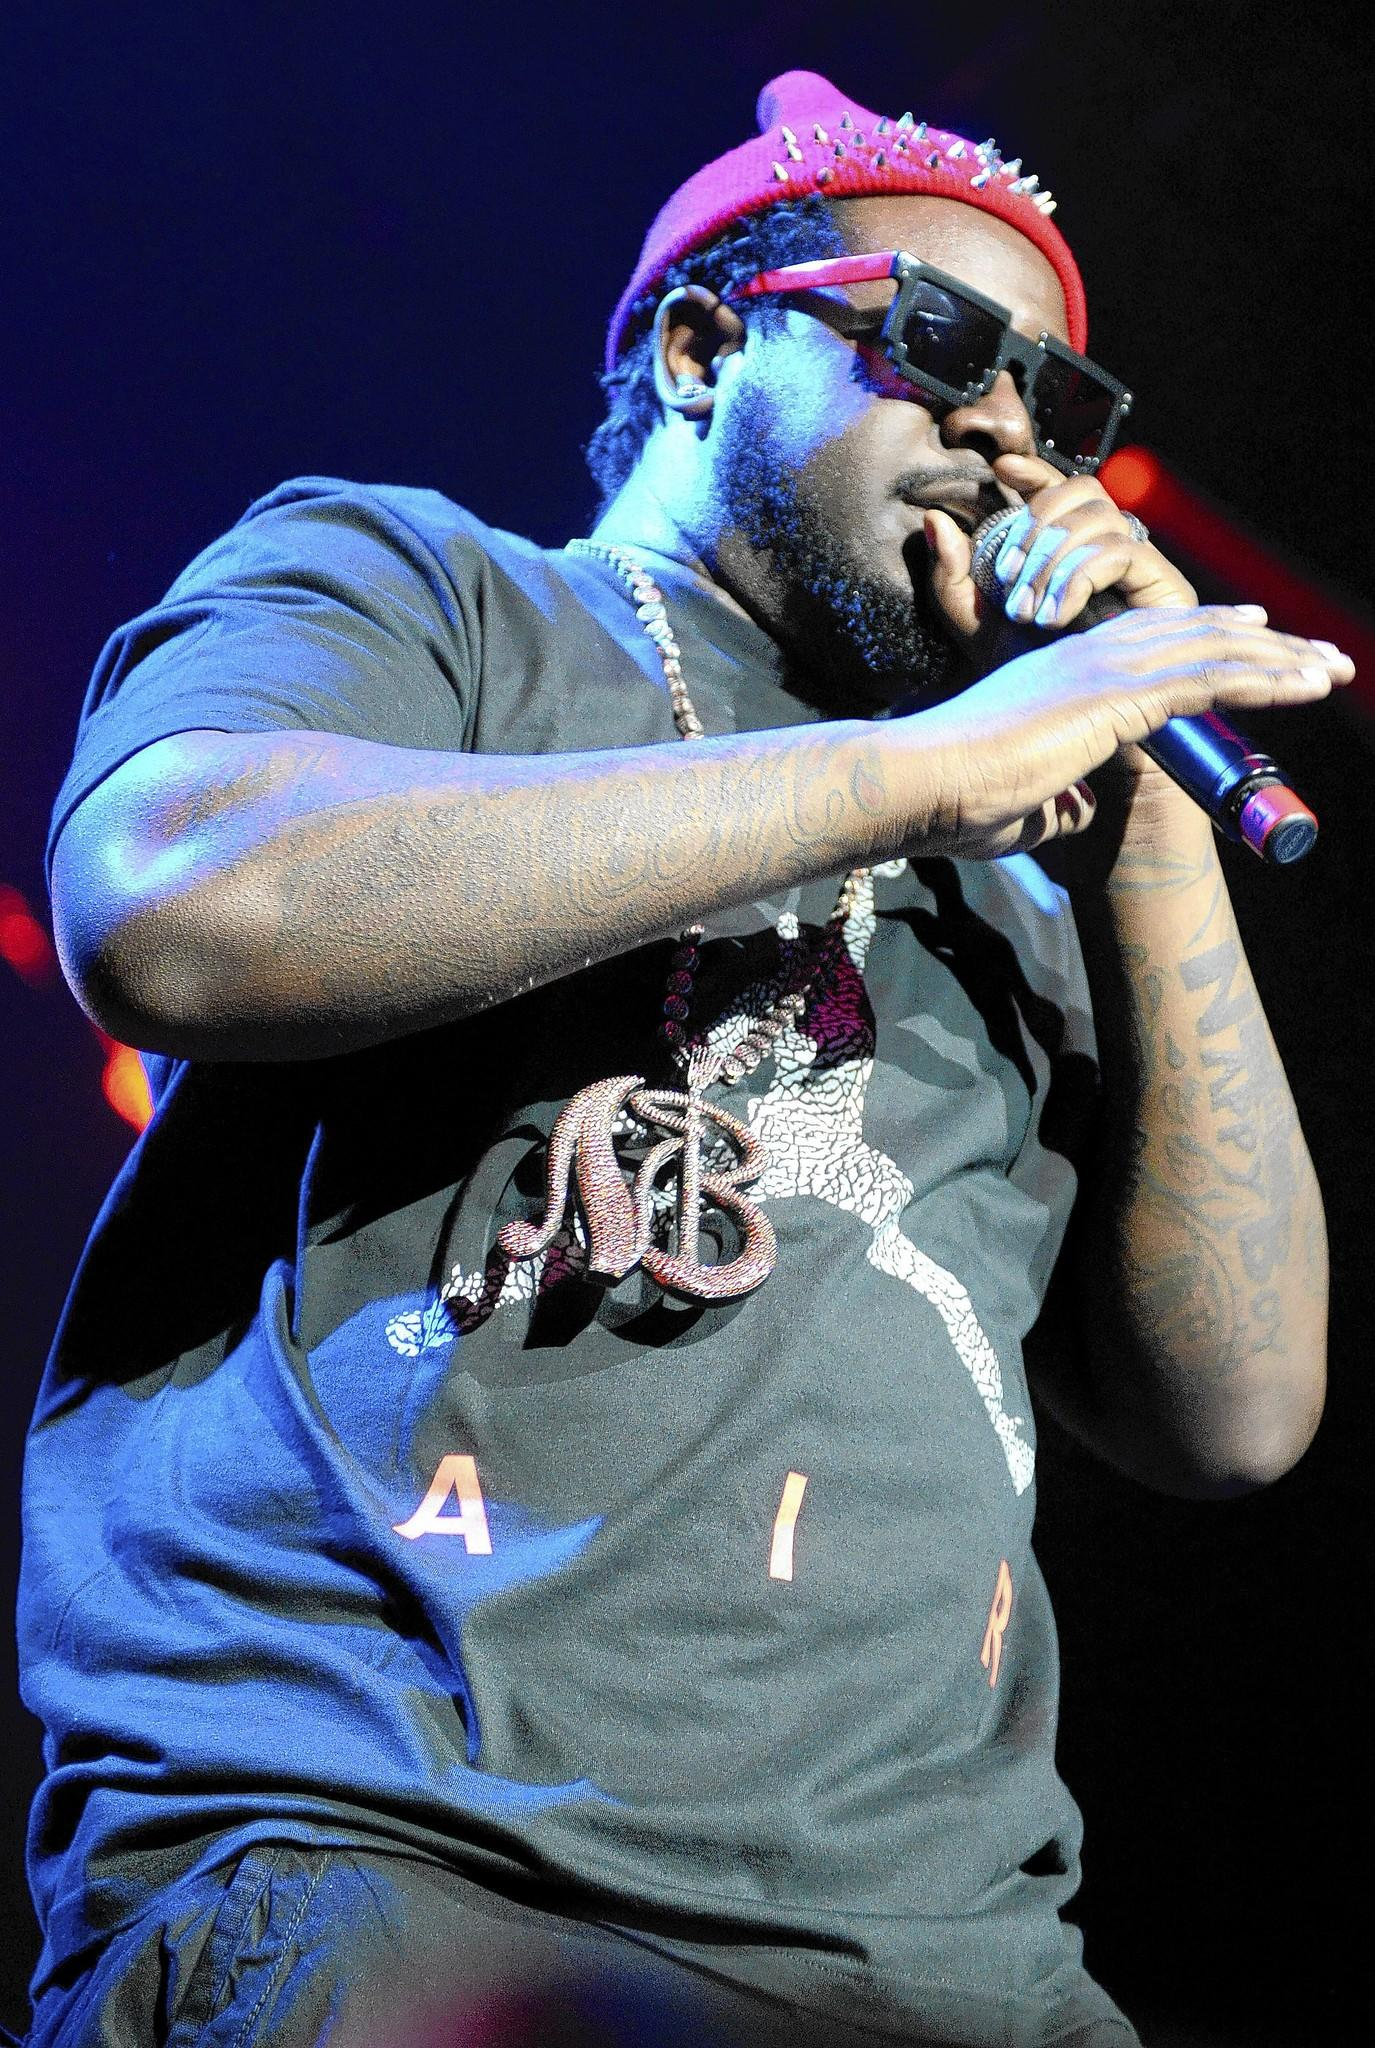 Rapper T-Pain will perform Aug. 11 at The Beacham in Orlando.